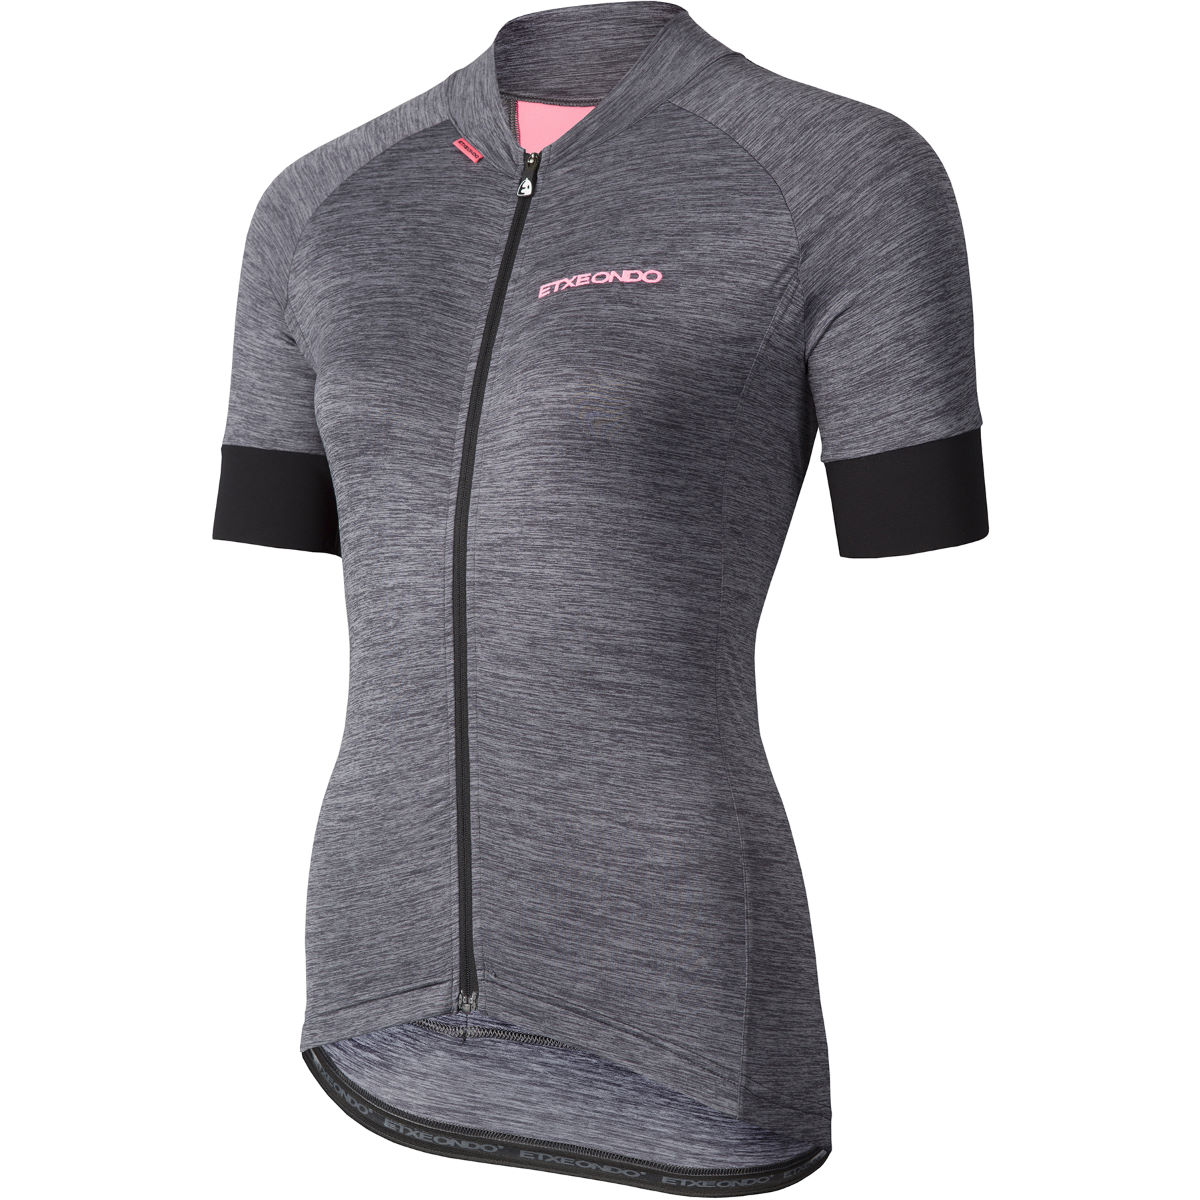 Image of Maillot Femme Etxeondo Terra (manches courtes) - L Rose Pink